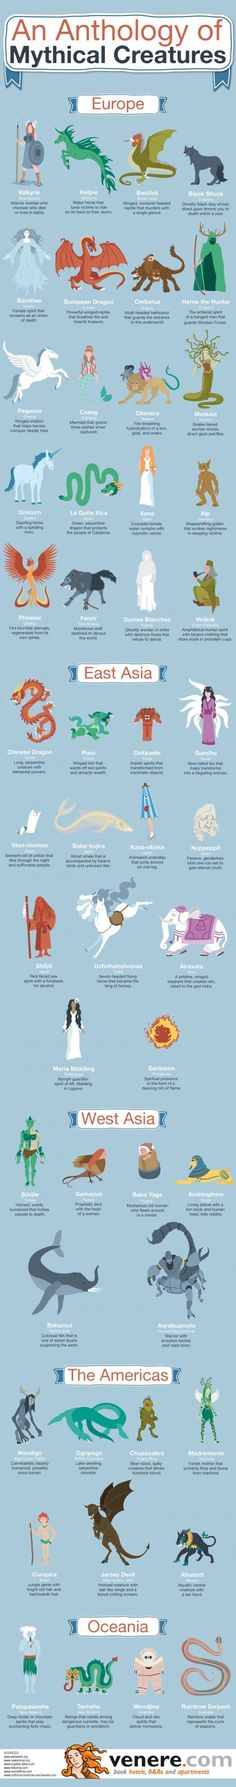 An Anthology of Mythical Creatures - Infographic | Digital Delights - Digital Tribes | Scoop.it